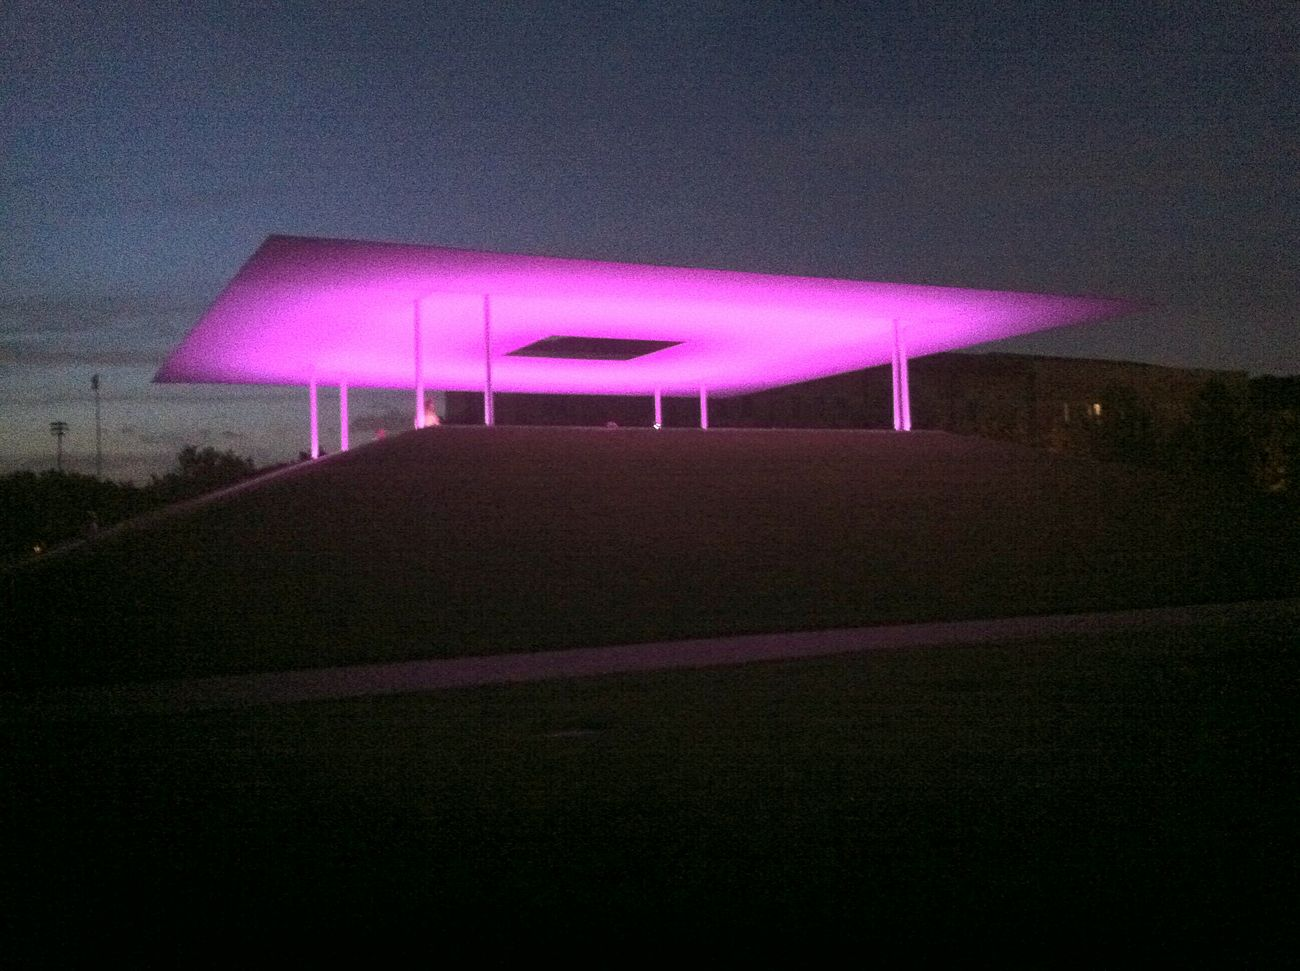 Skspace Pink Color Illuminated Outdoors Architecture Rice University Night Architectureporn Tranquil Scene James Turrell Skyspace